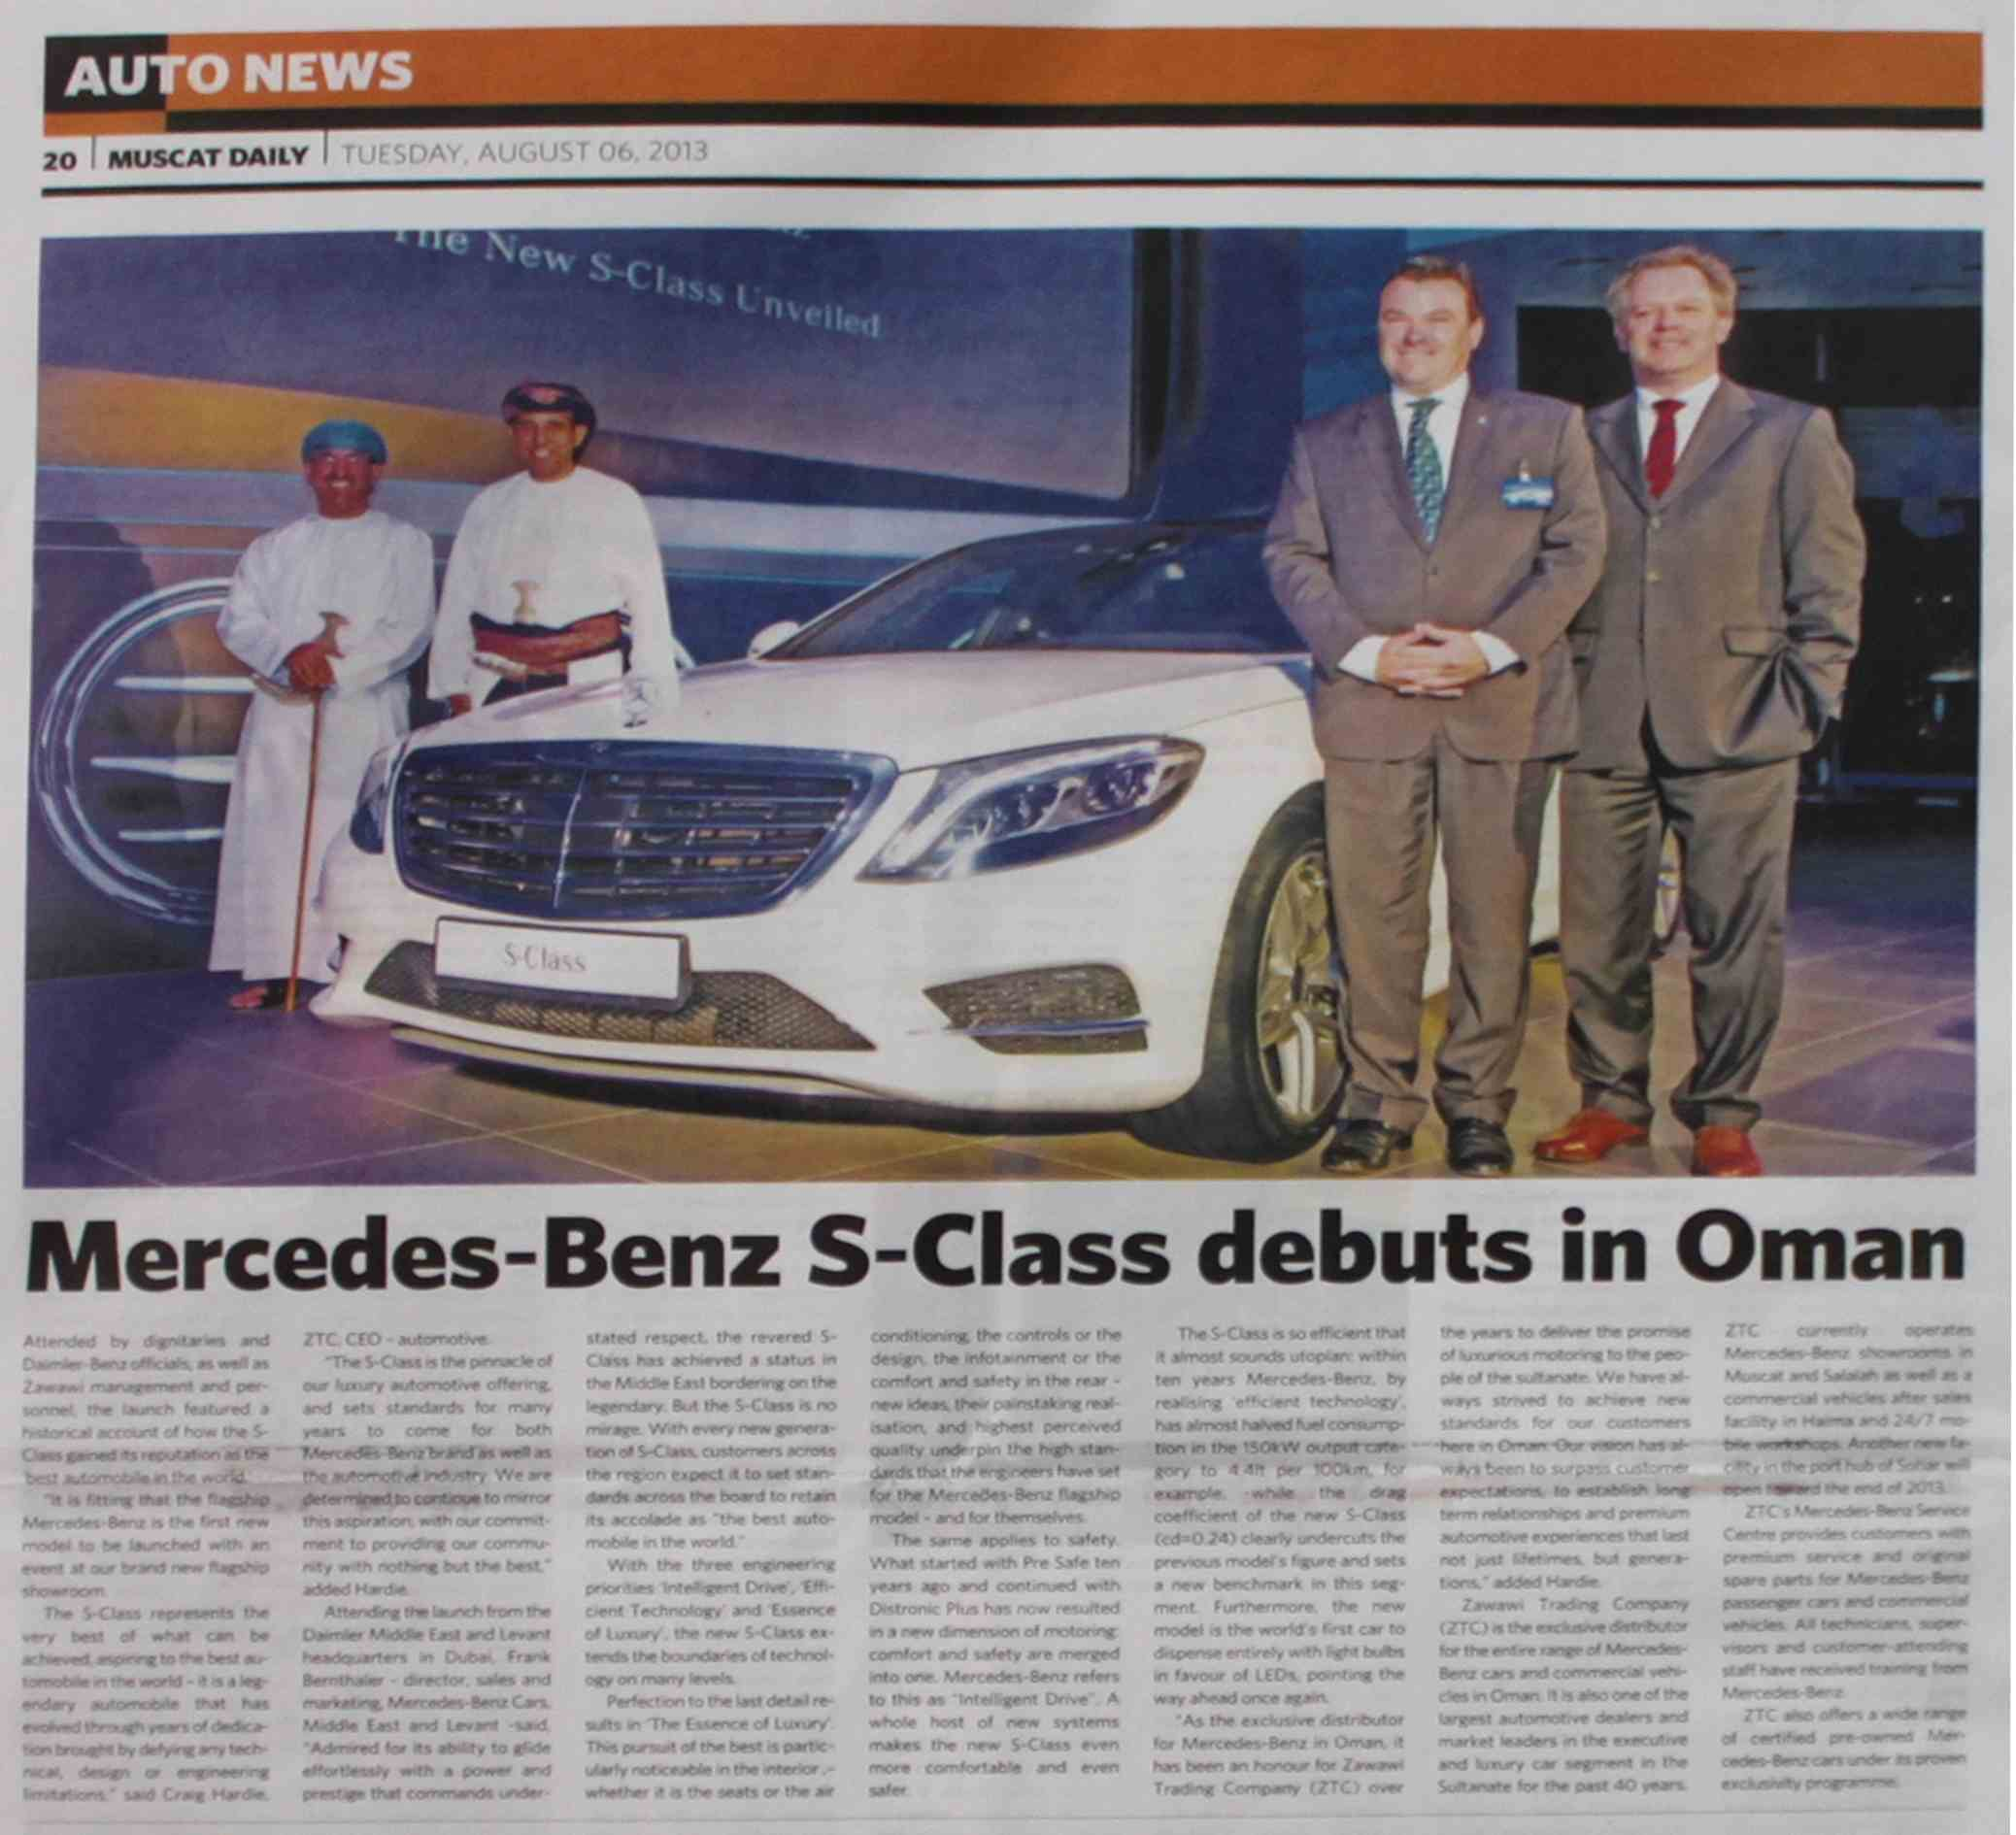 PRL in Muscat Daily, 6 Aug 131